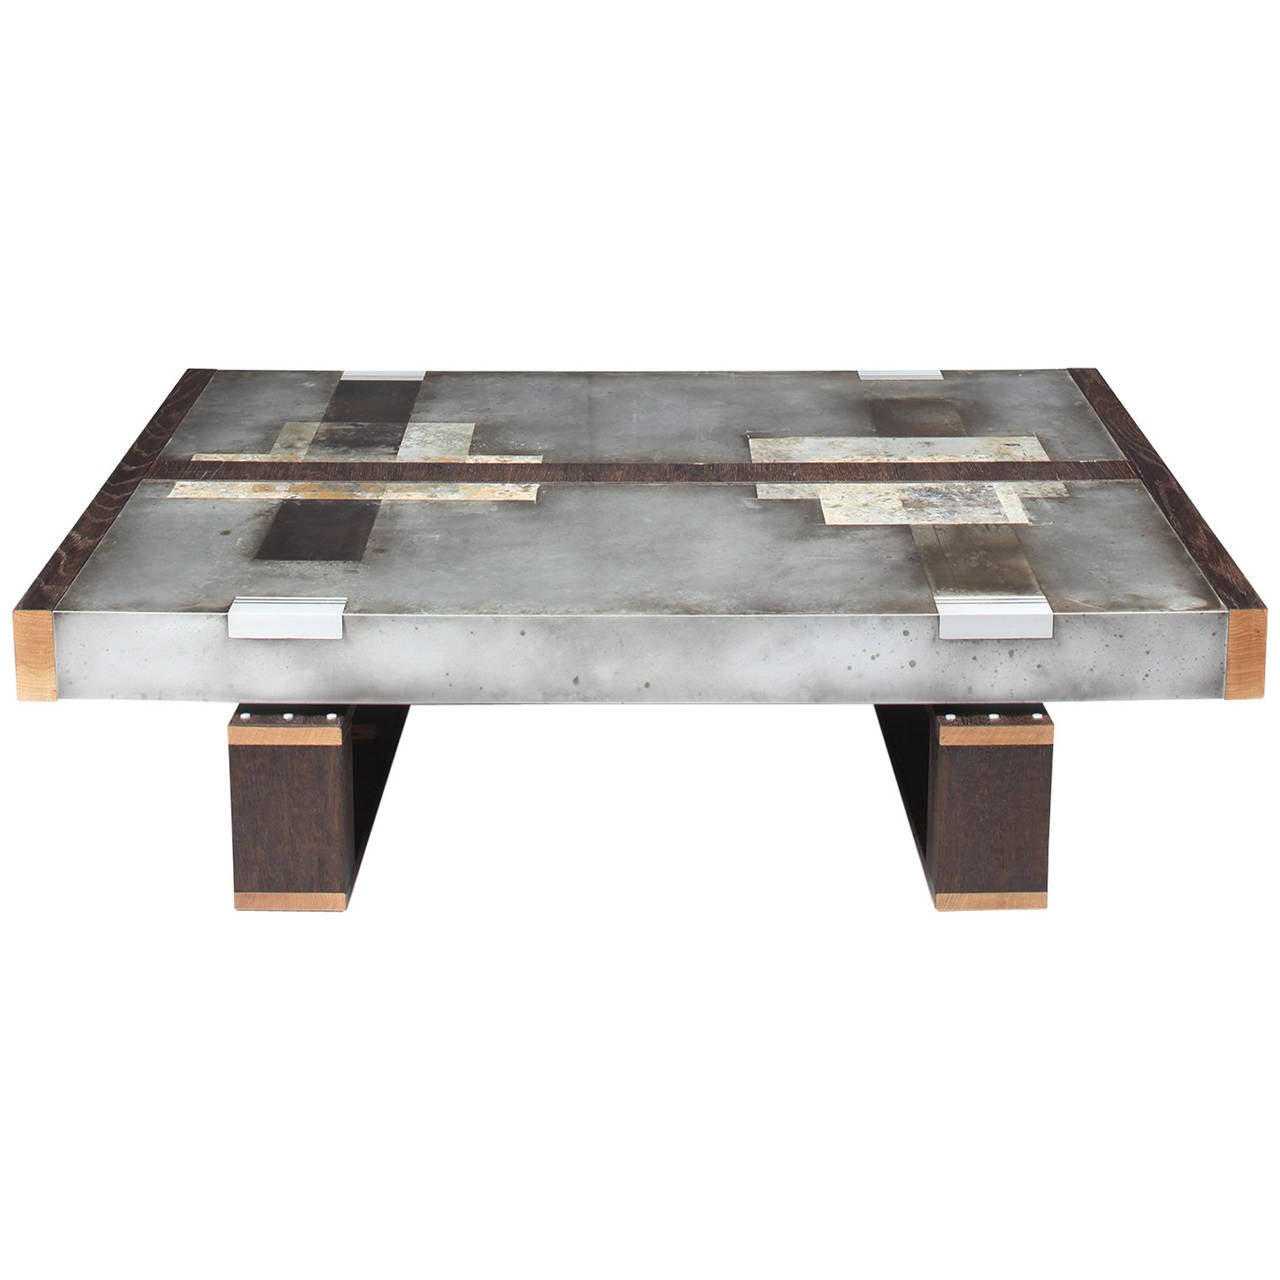 Divided lands coffee table in etched zinc and charred oak by divided lands coffee table in etched zinc and charred oak by studio roeper 1 geotapseo Choice Image